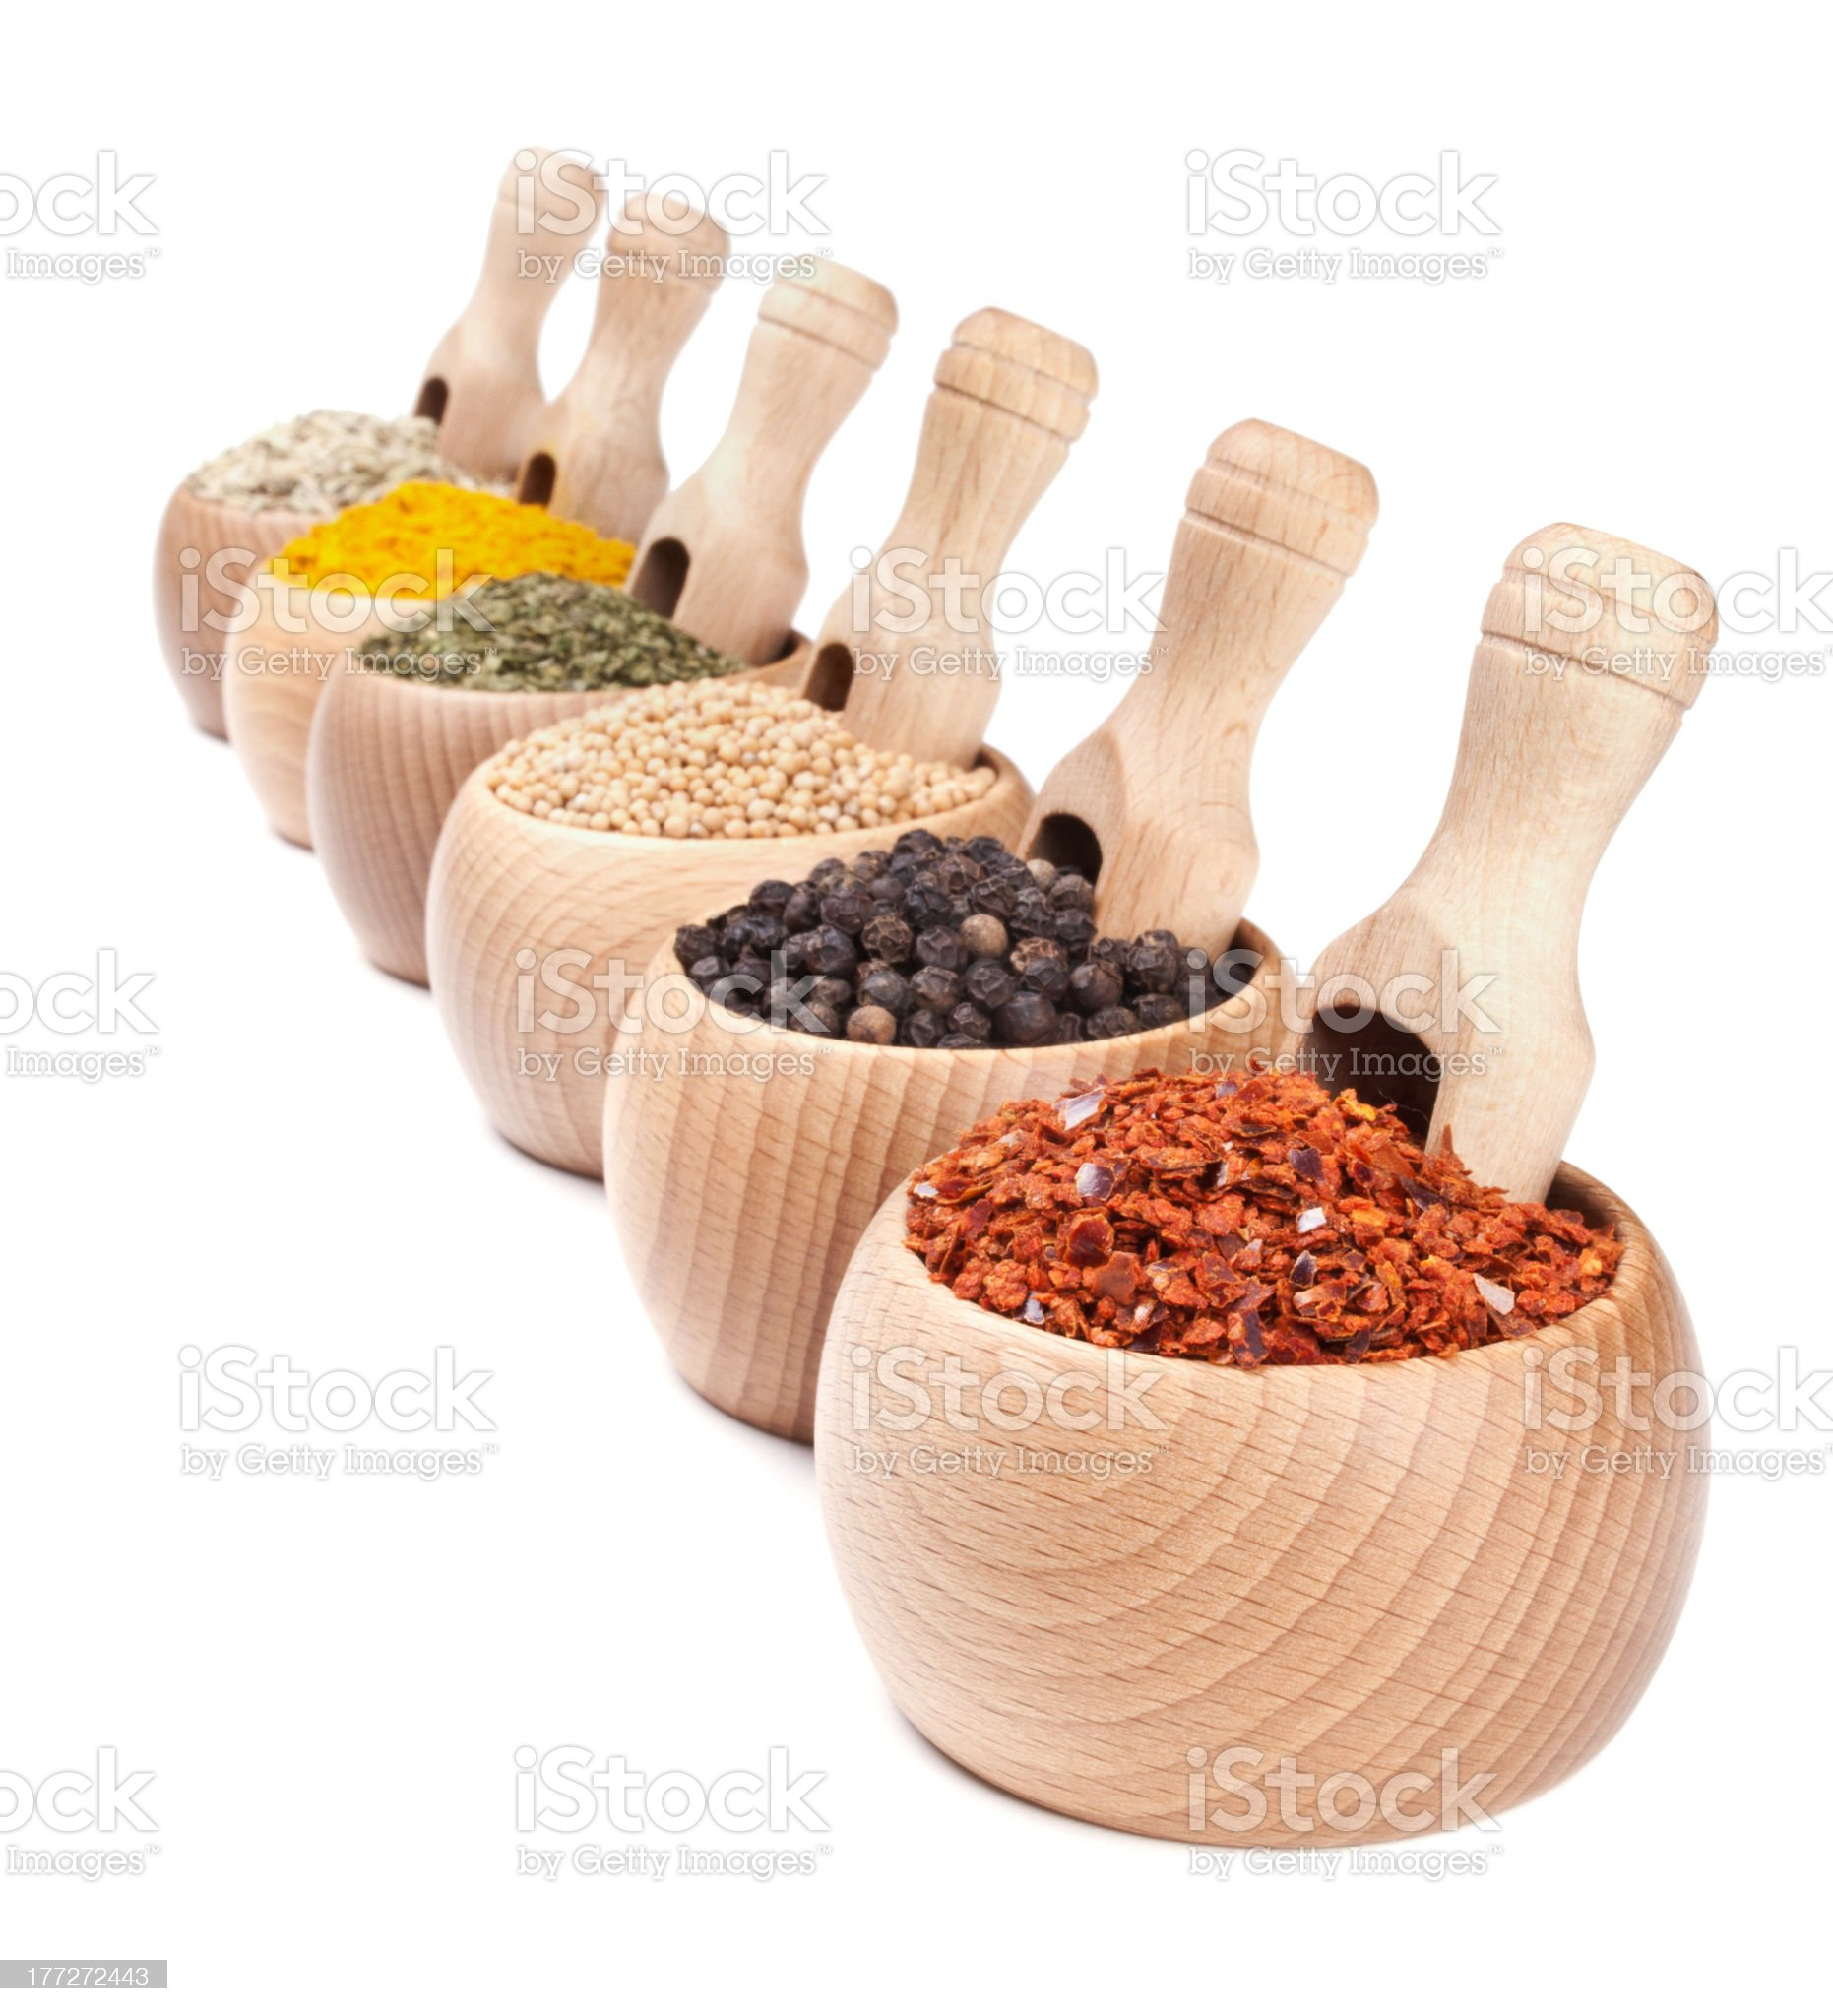 Row of wooden bowls with spices in them royalty-free stock photo